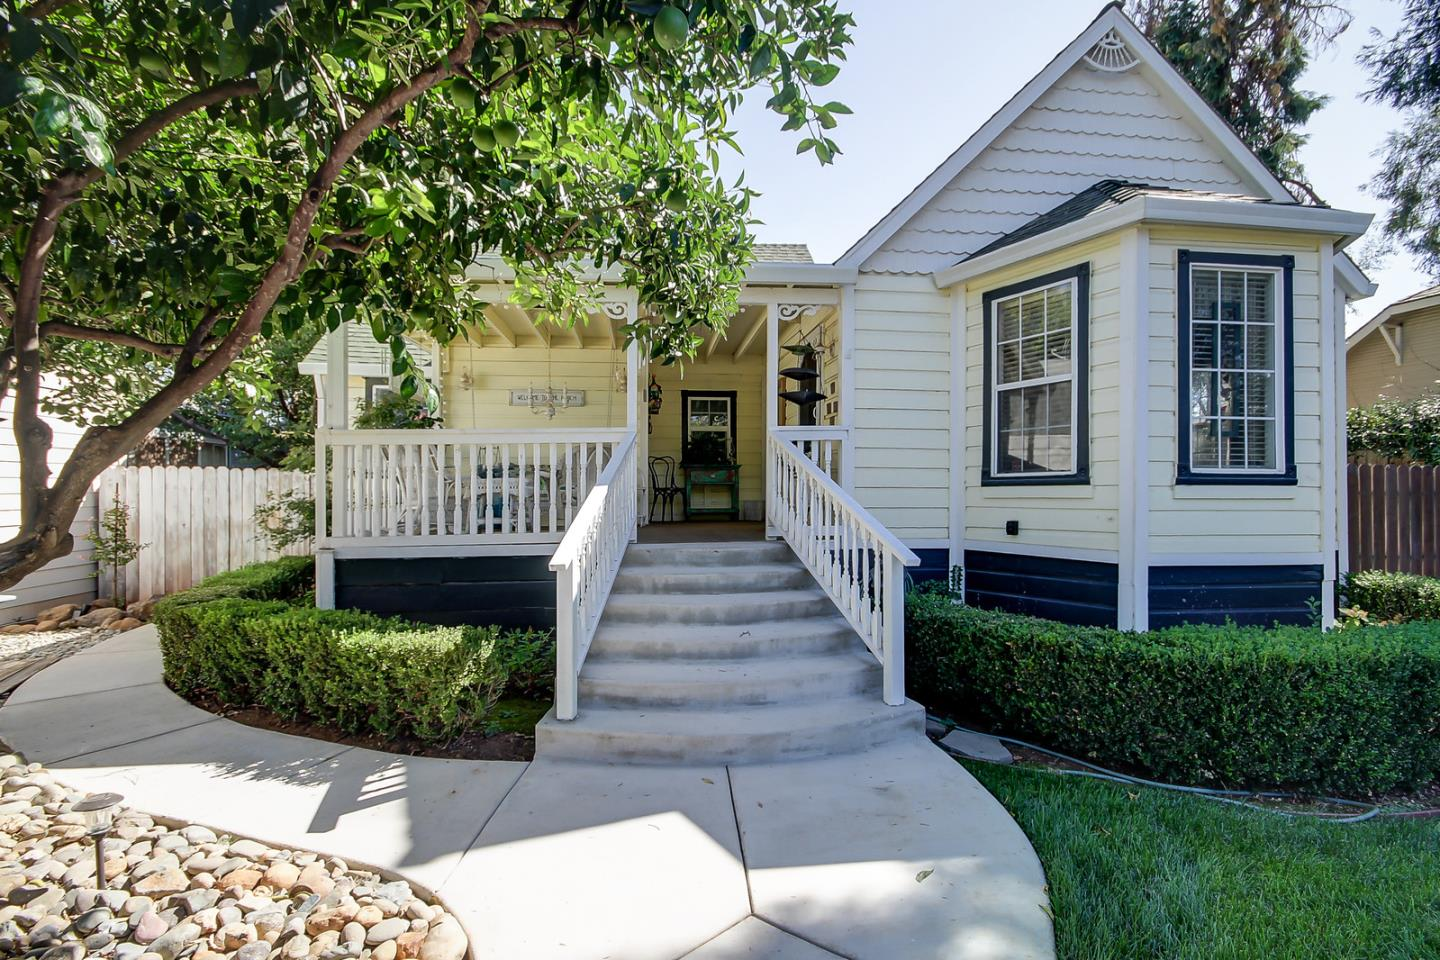 Single Family Home for Sale at 811 Mormon Street 811 Mormon Street Folsom, California 95630 United States